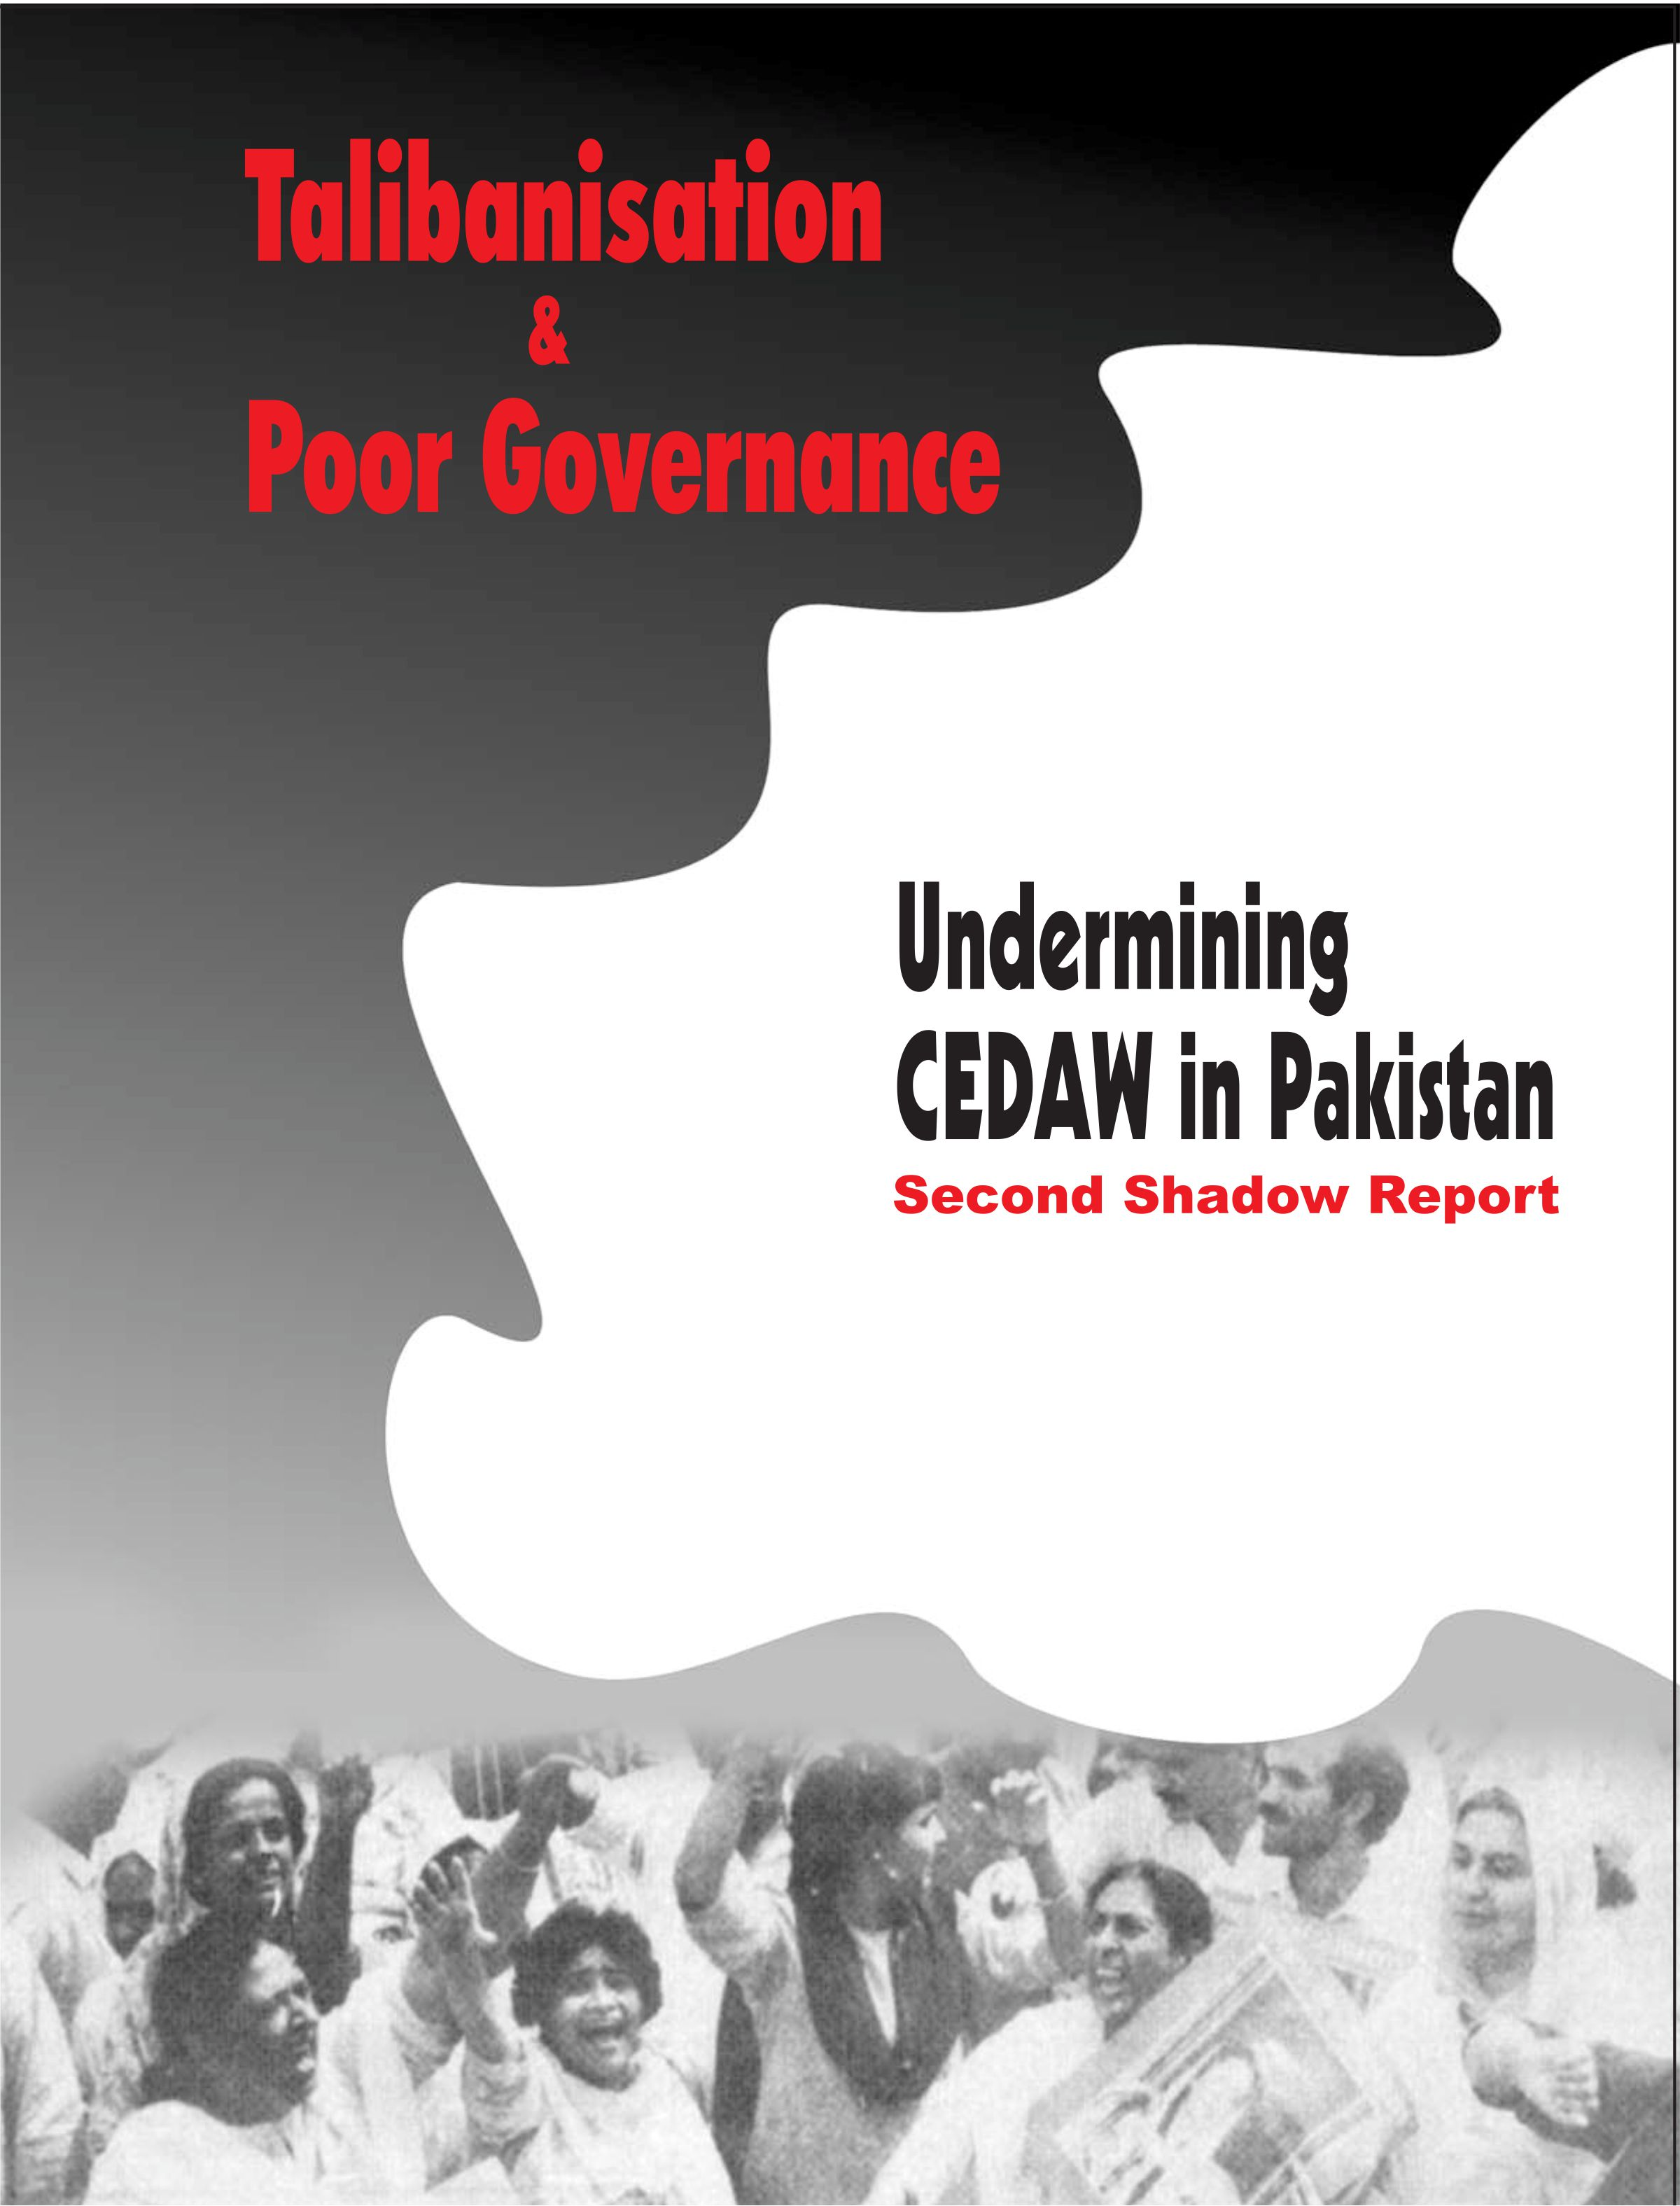 Talibanisation & Poor Governance